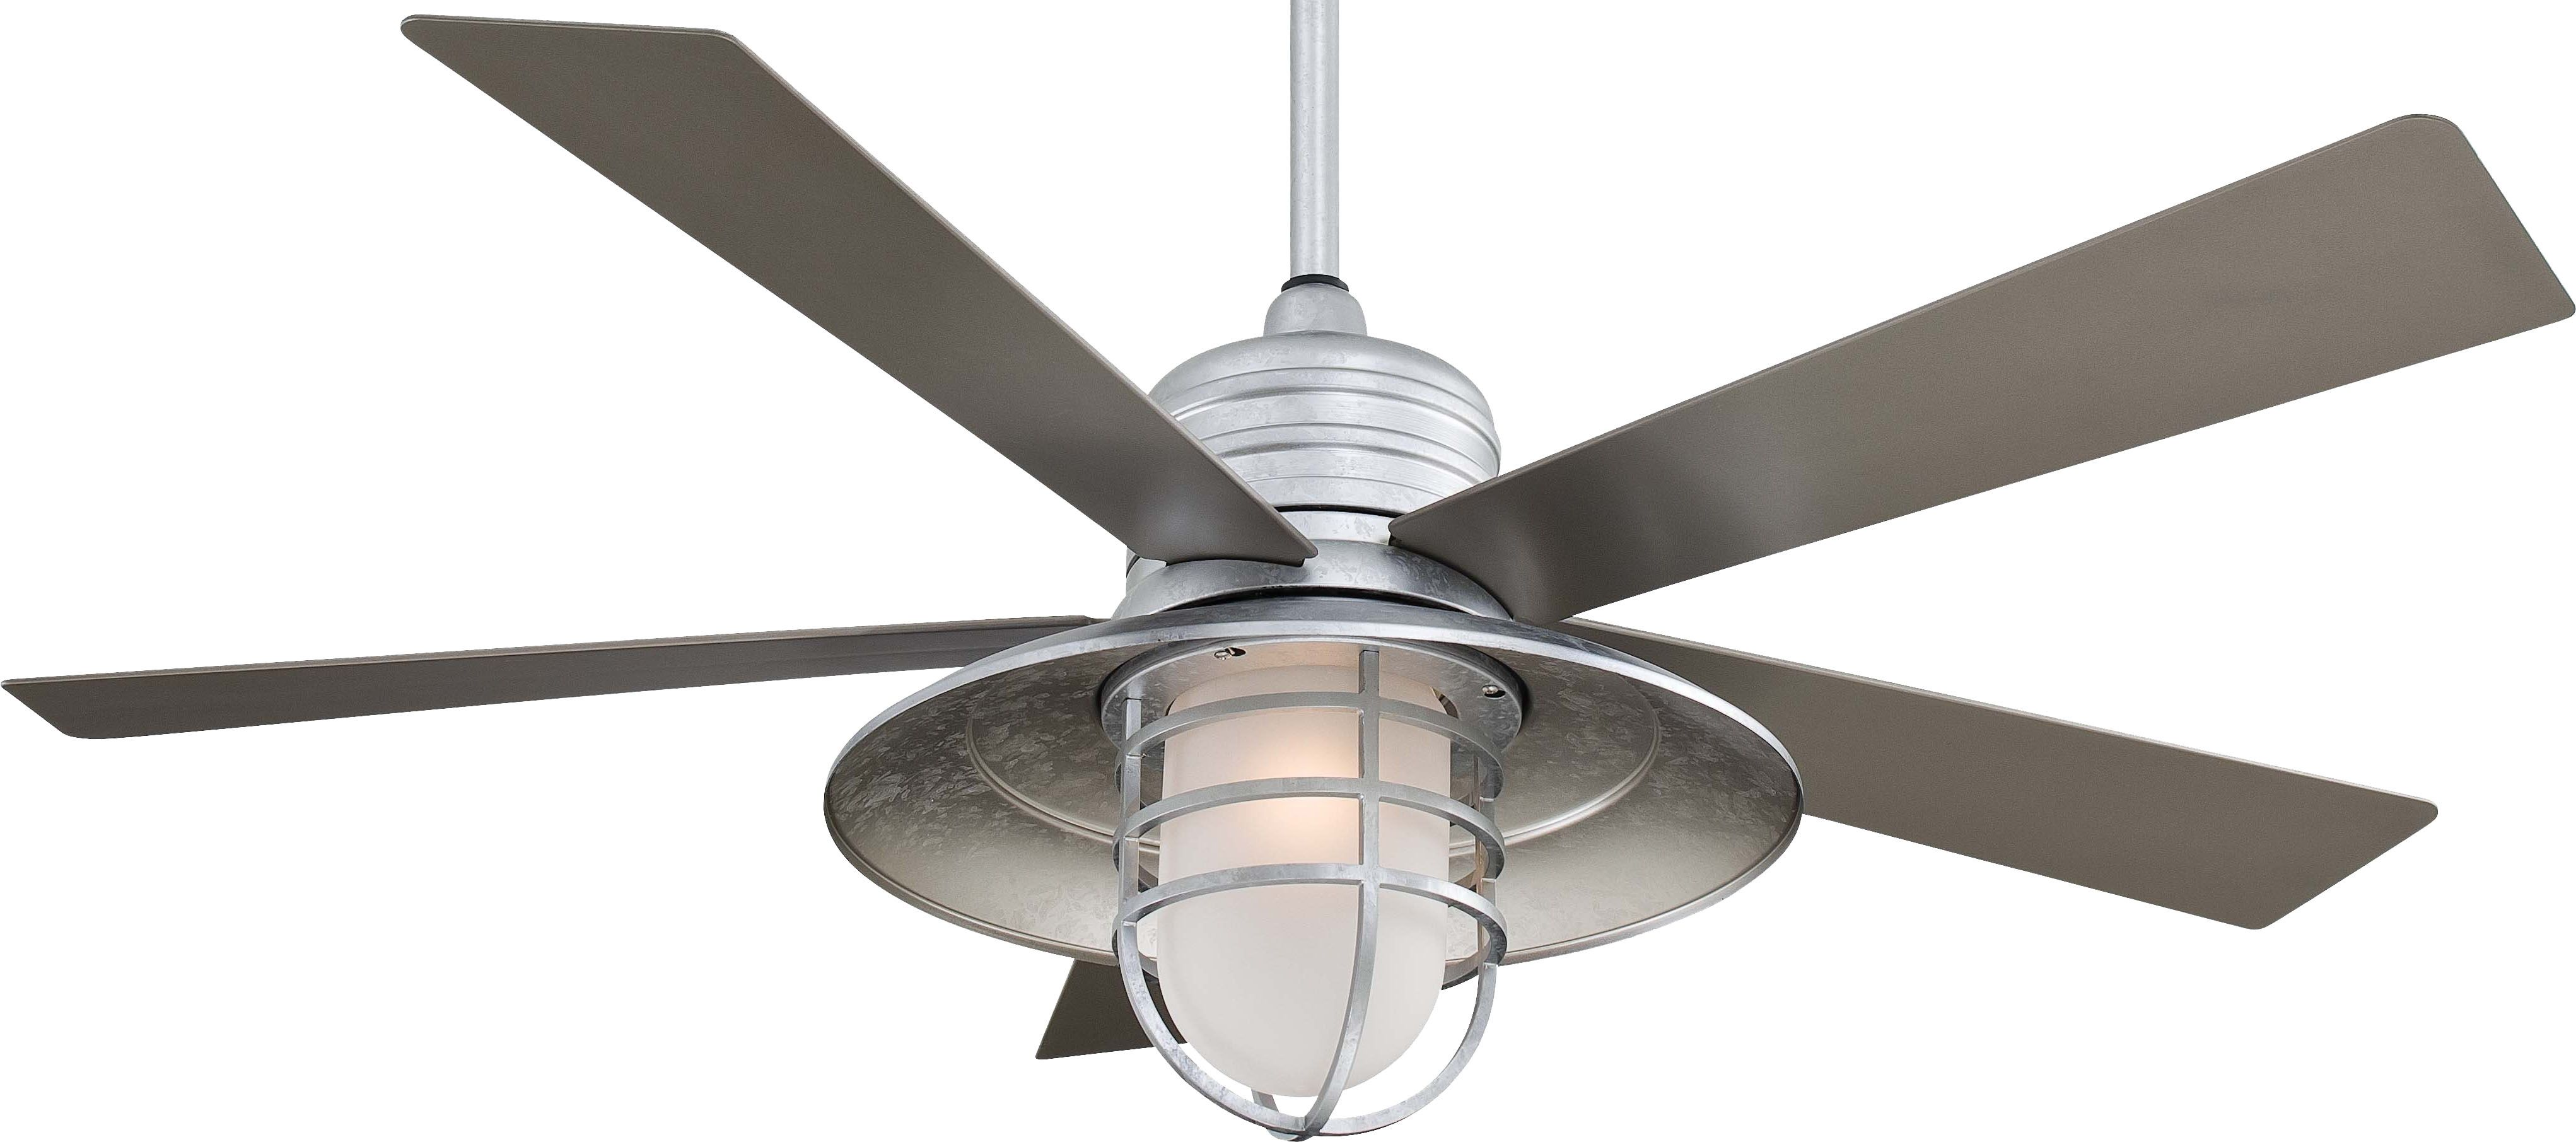 Extra Industrial Ceiling Fans